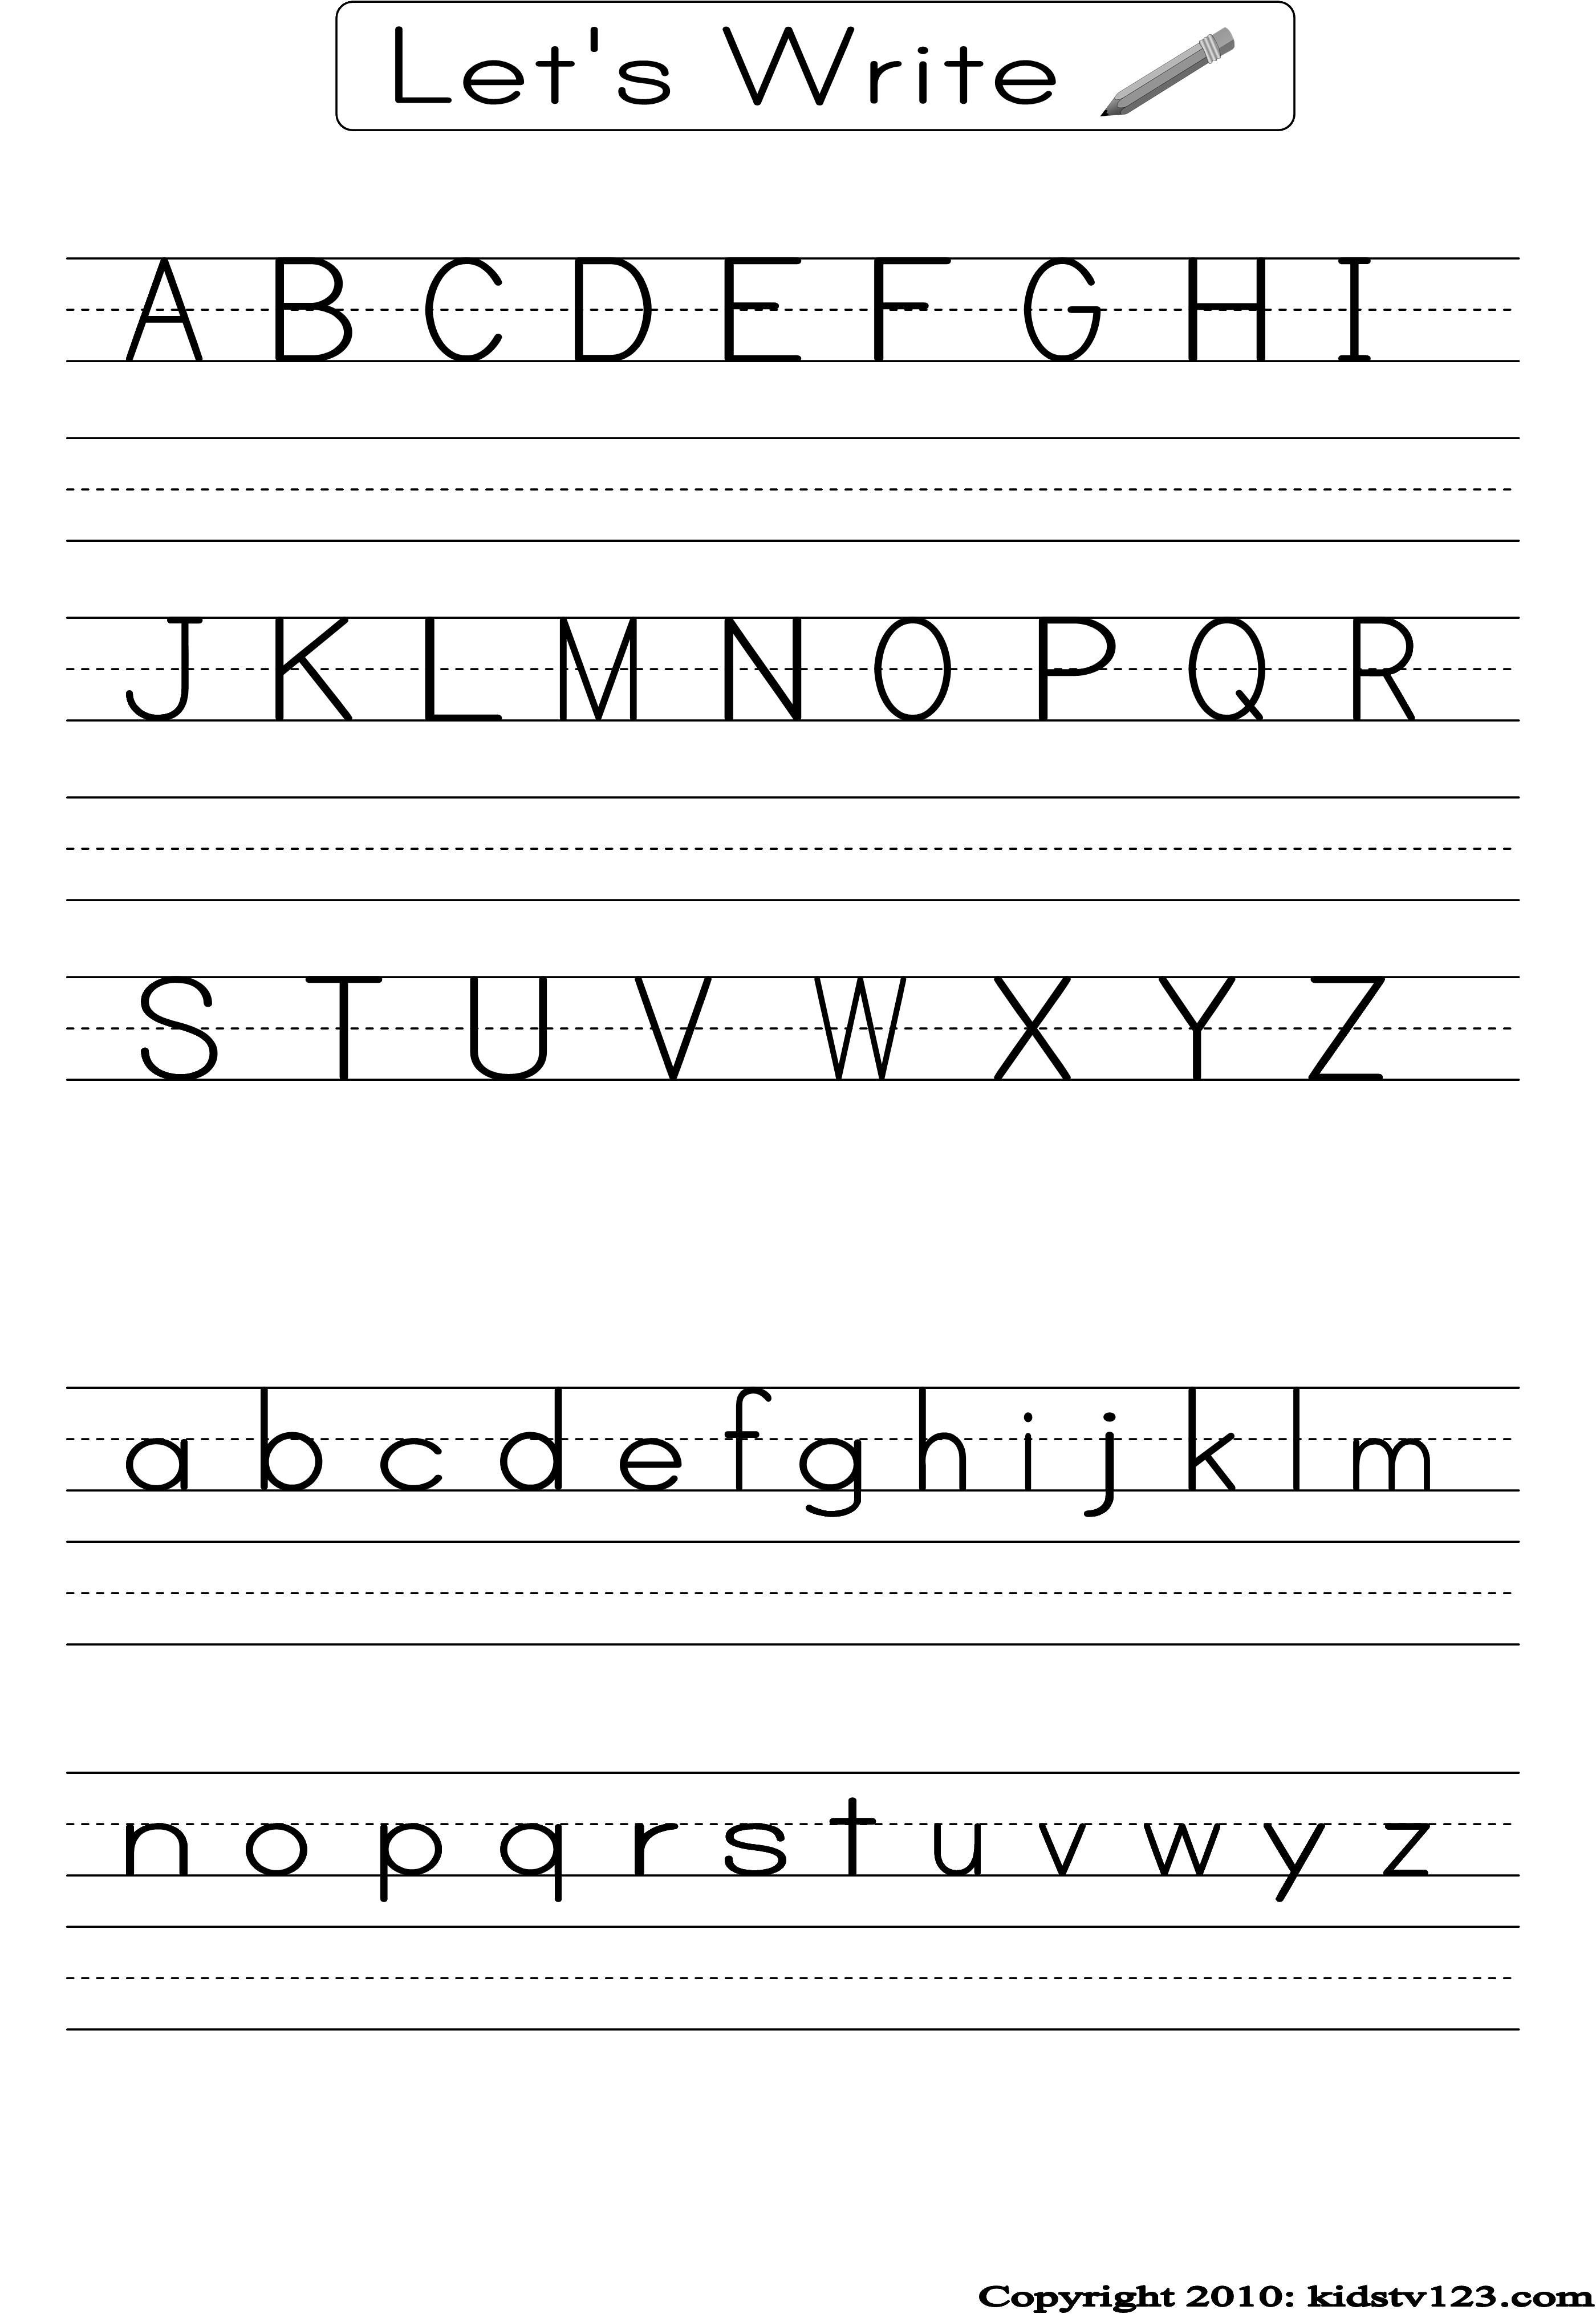 Alphabet Writing Practice Sheet